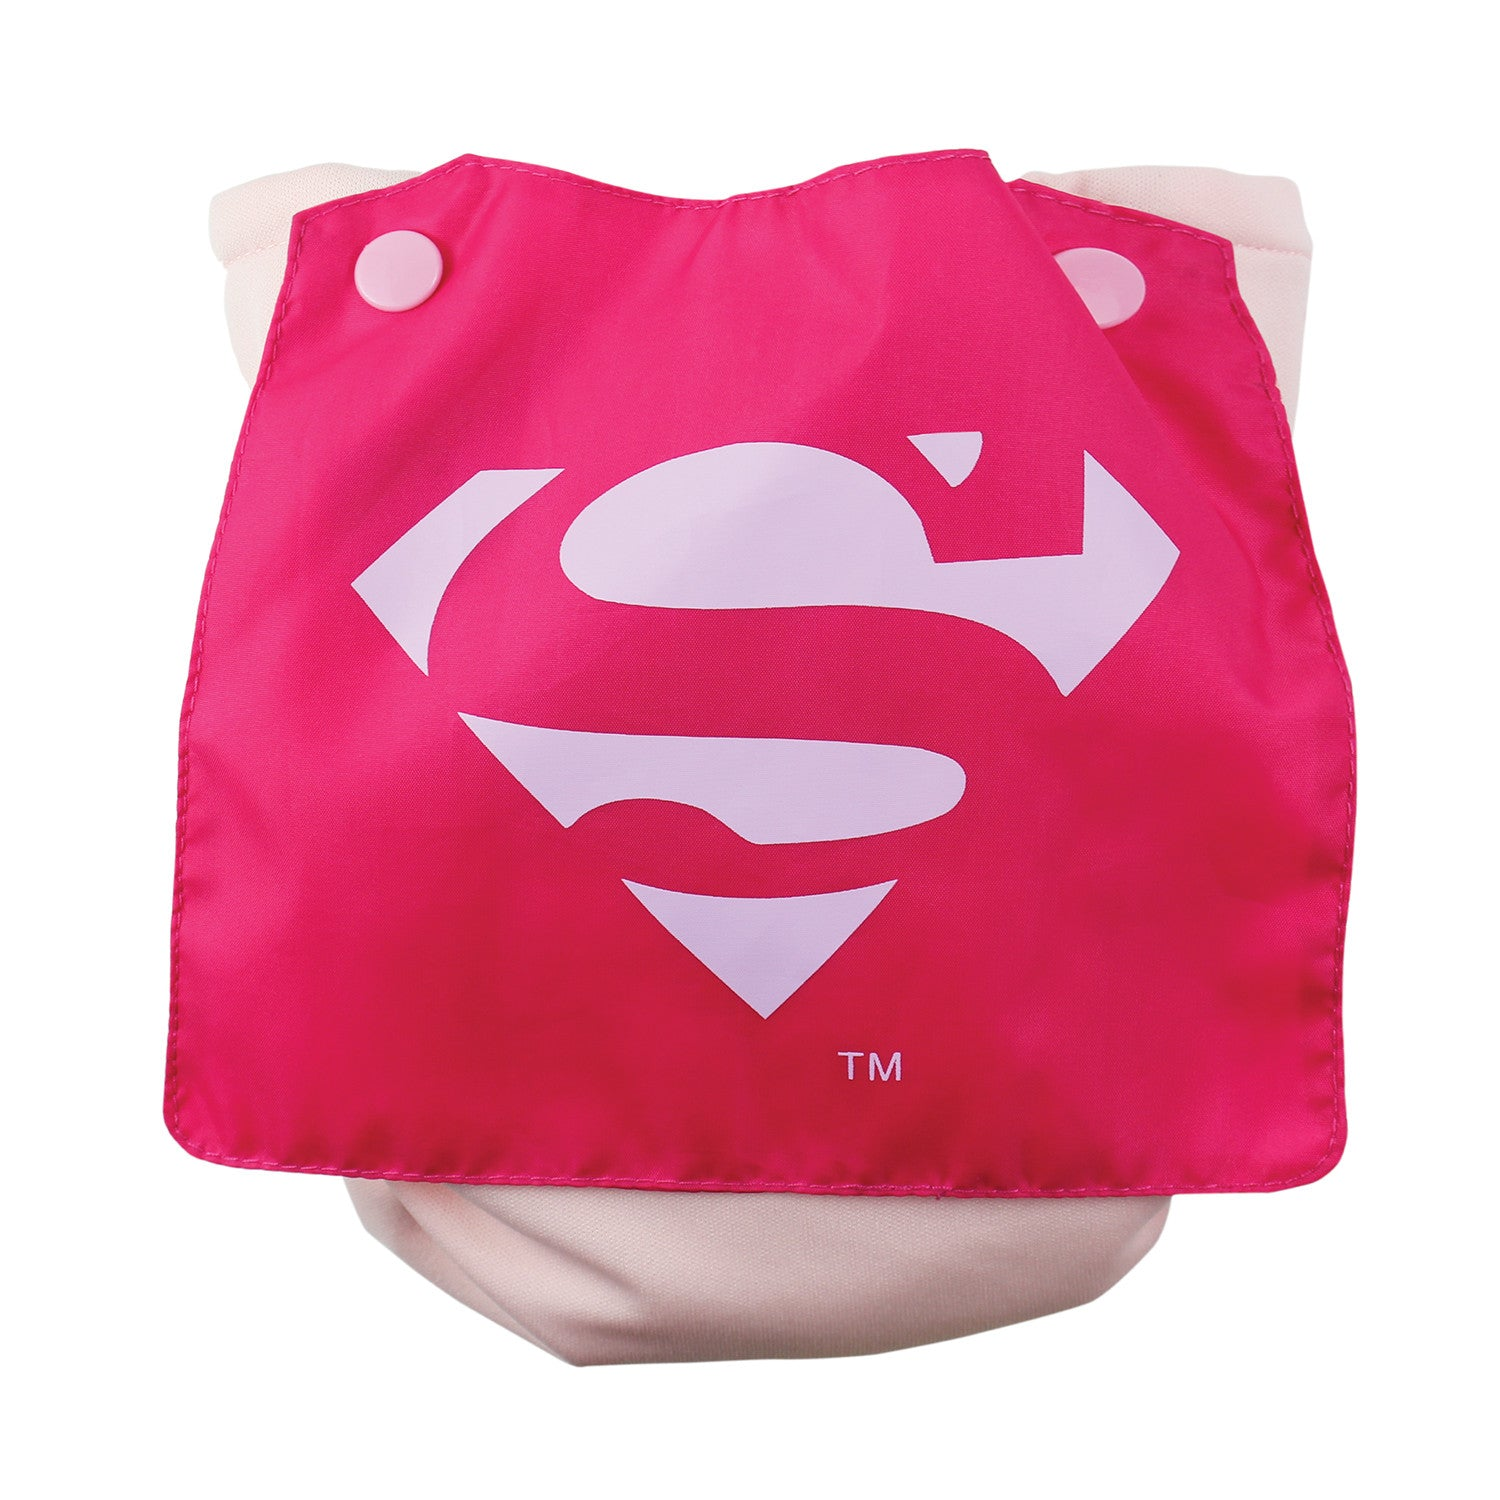 Bumkins DC Comics Snap In One Cloth Diaper With Cape